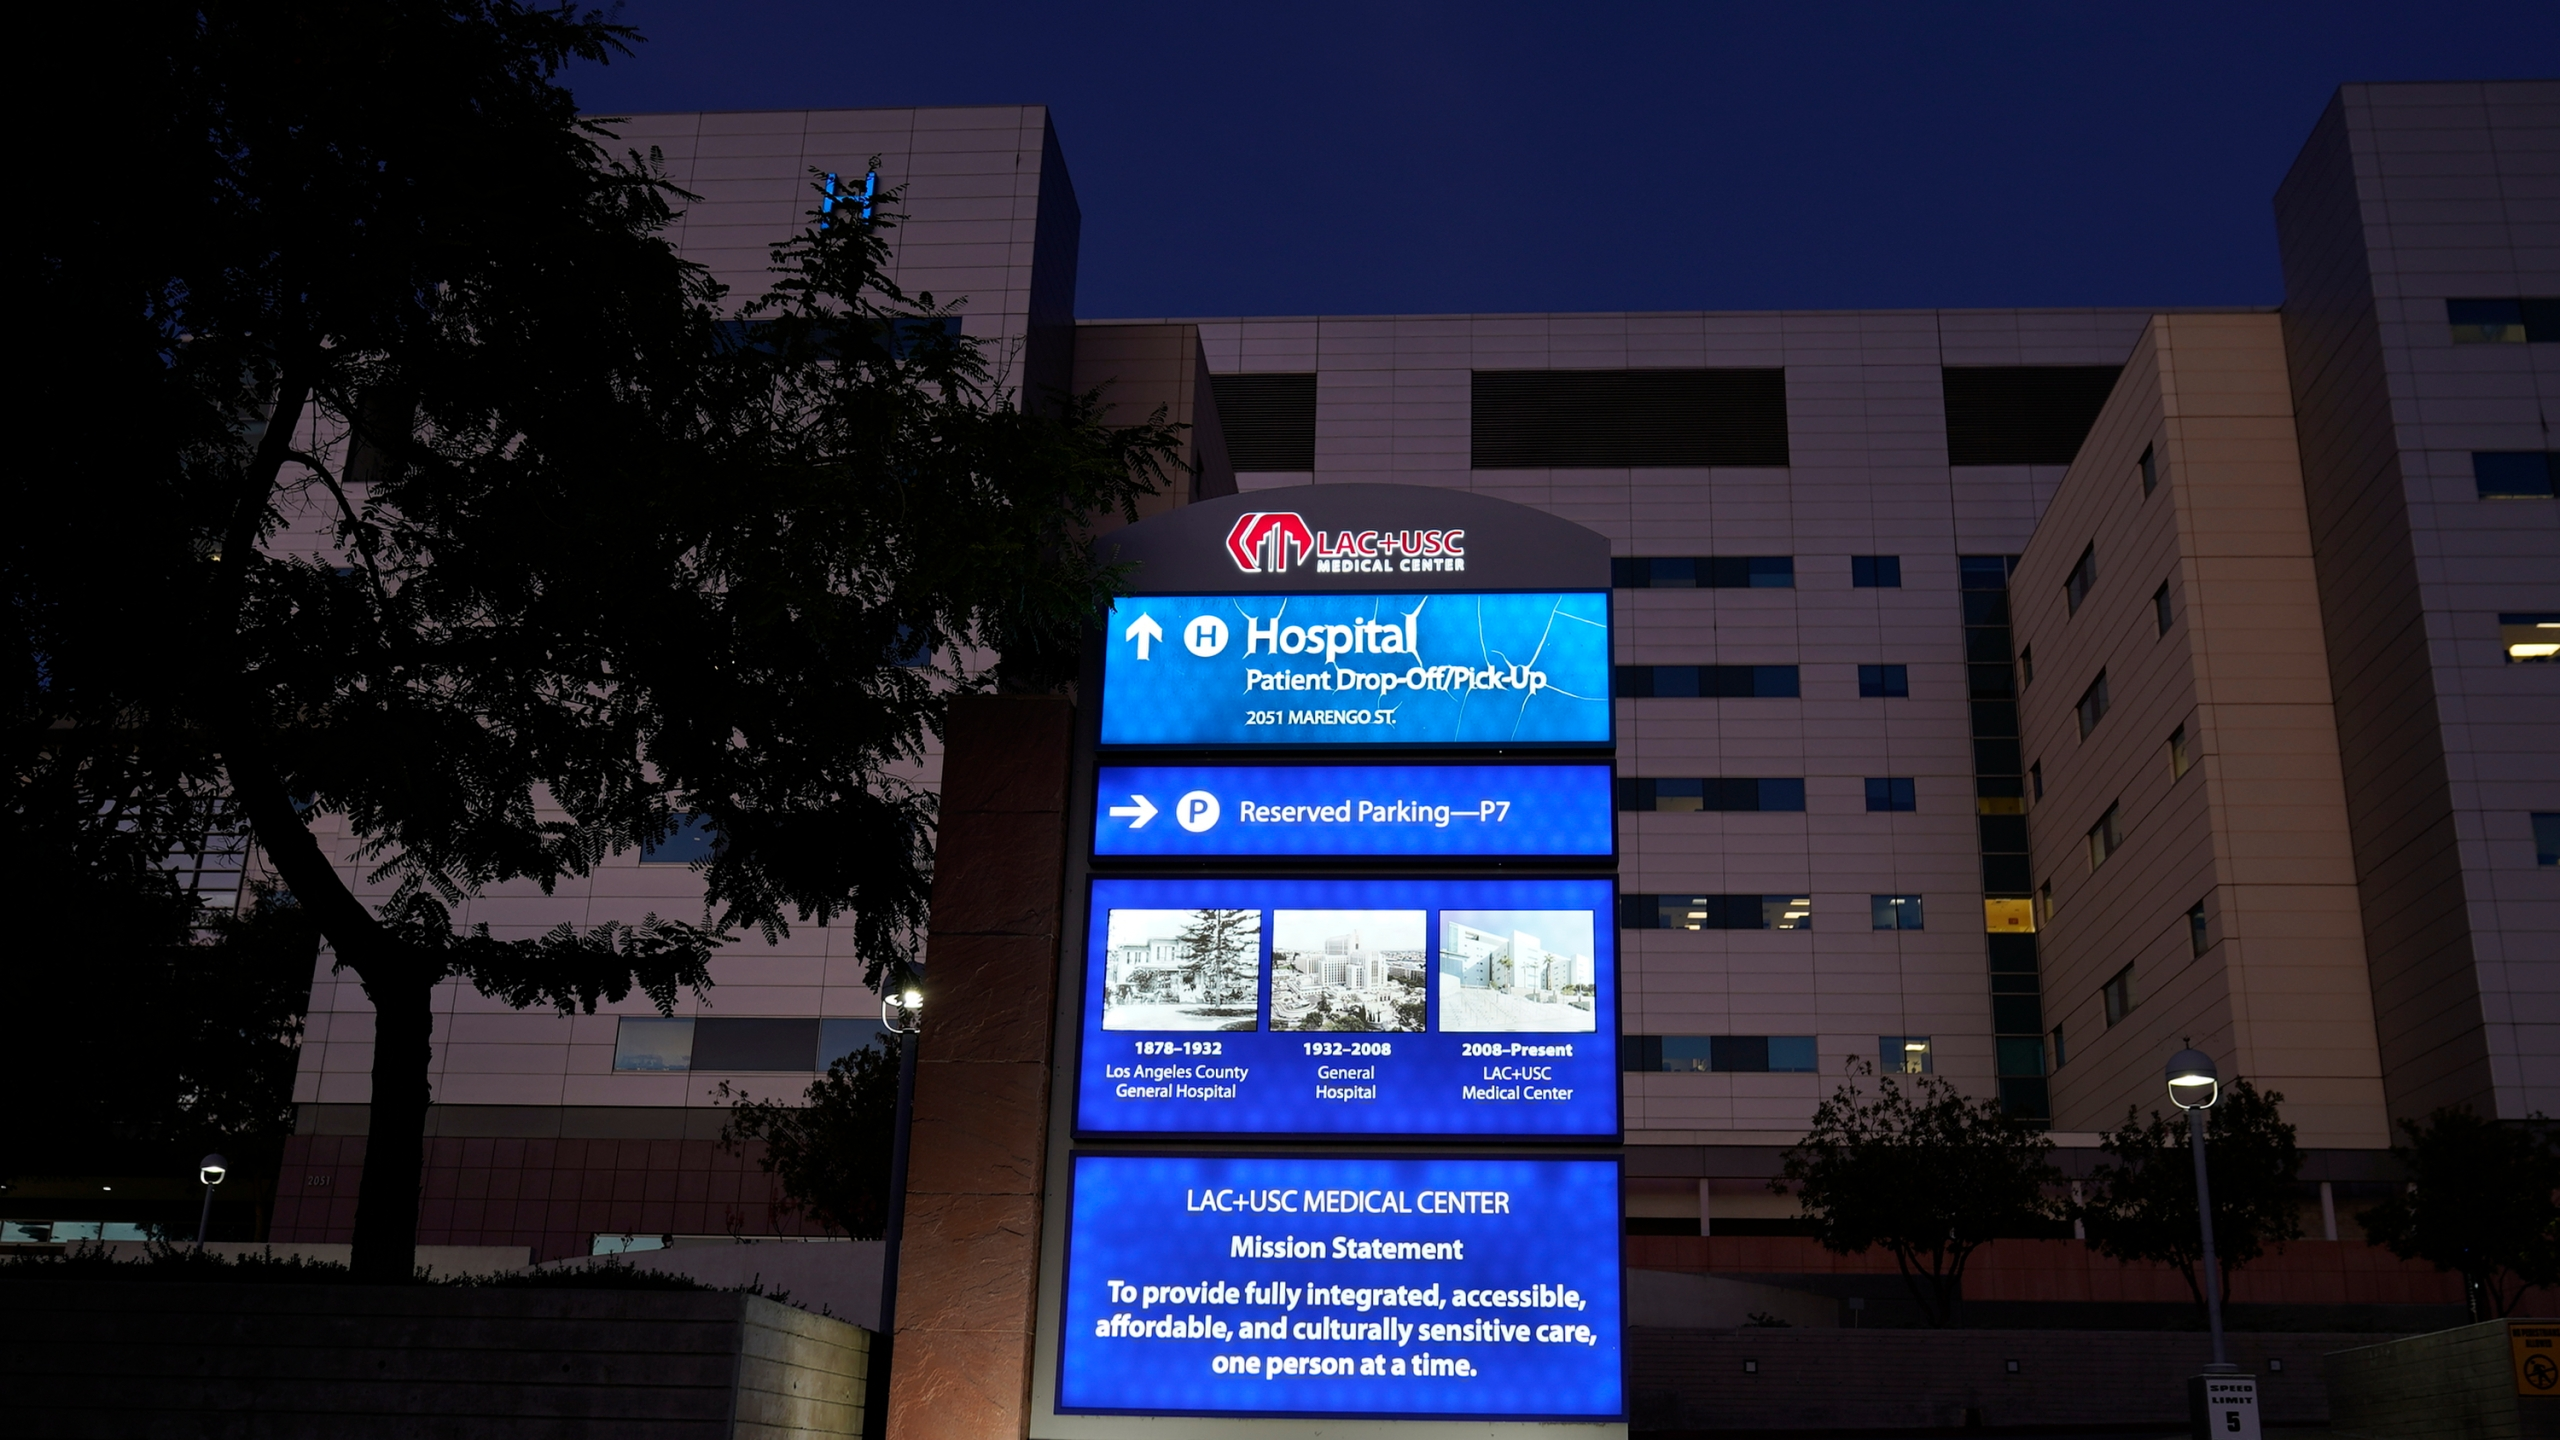 Los Angeles County+USC Medical Center, LAC+USC Medical Center